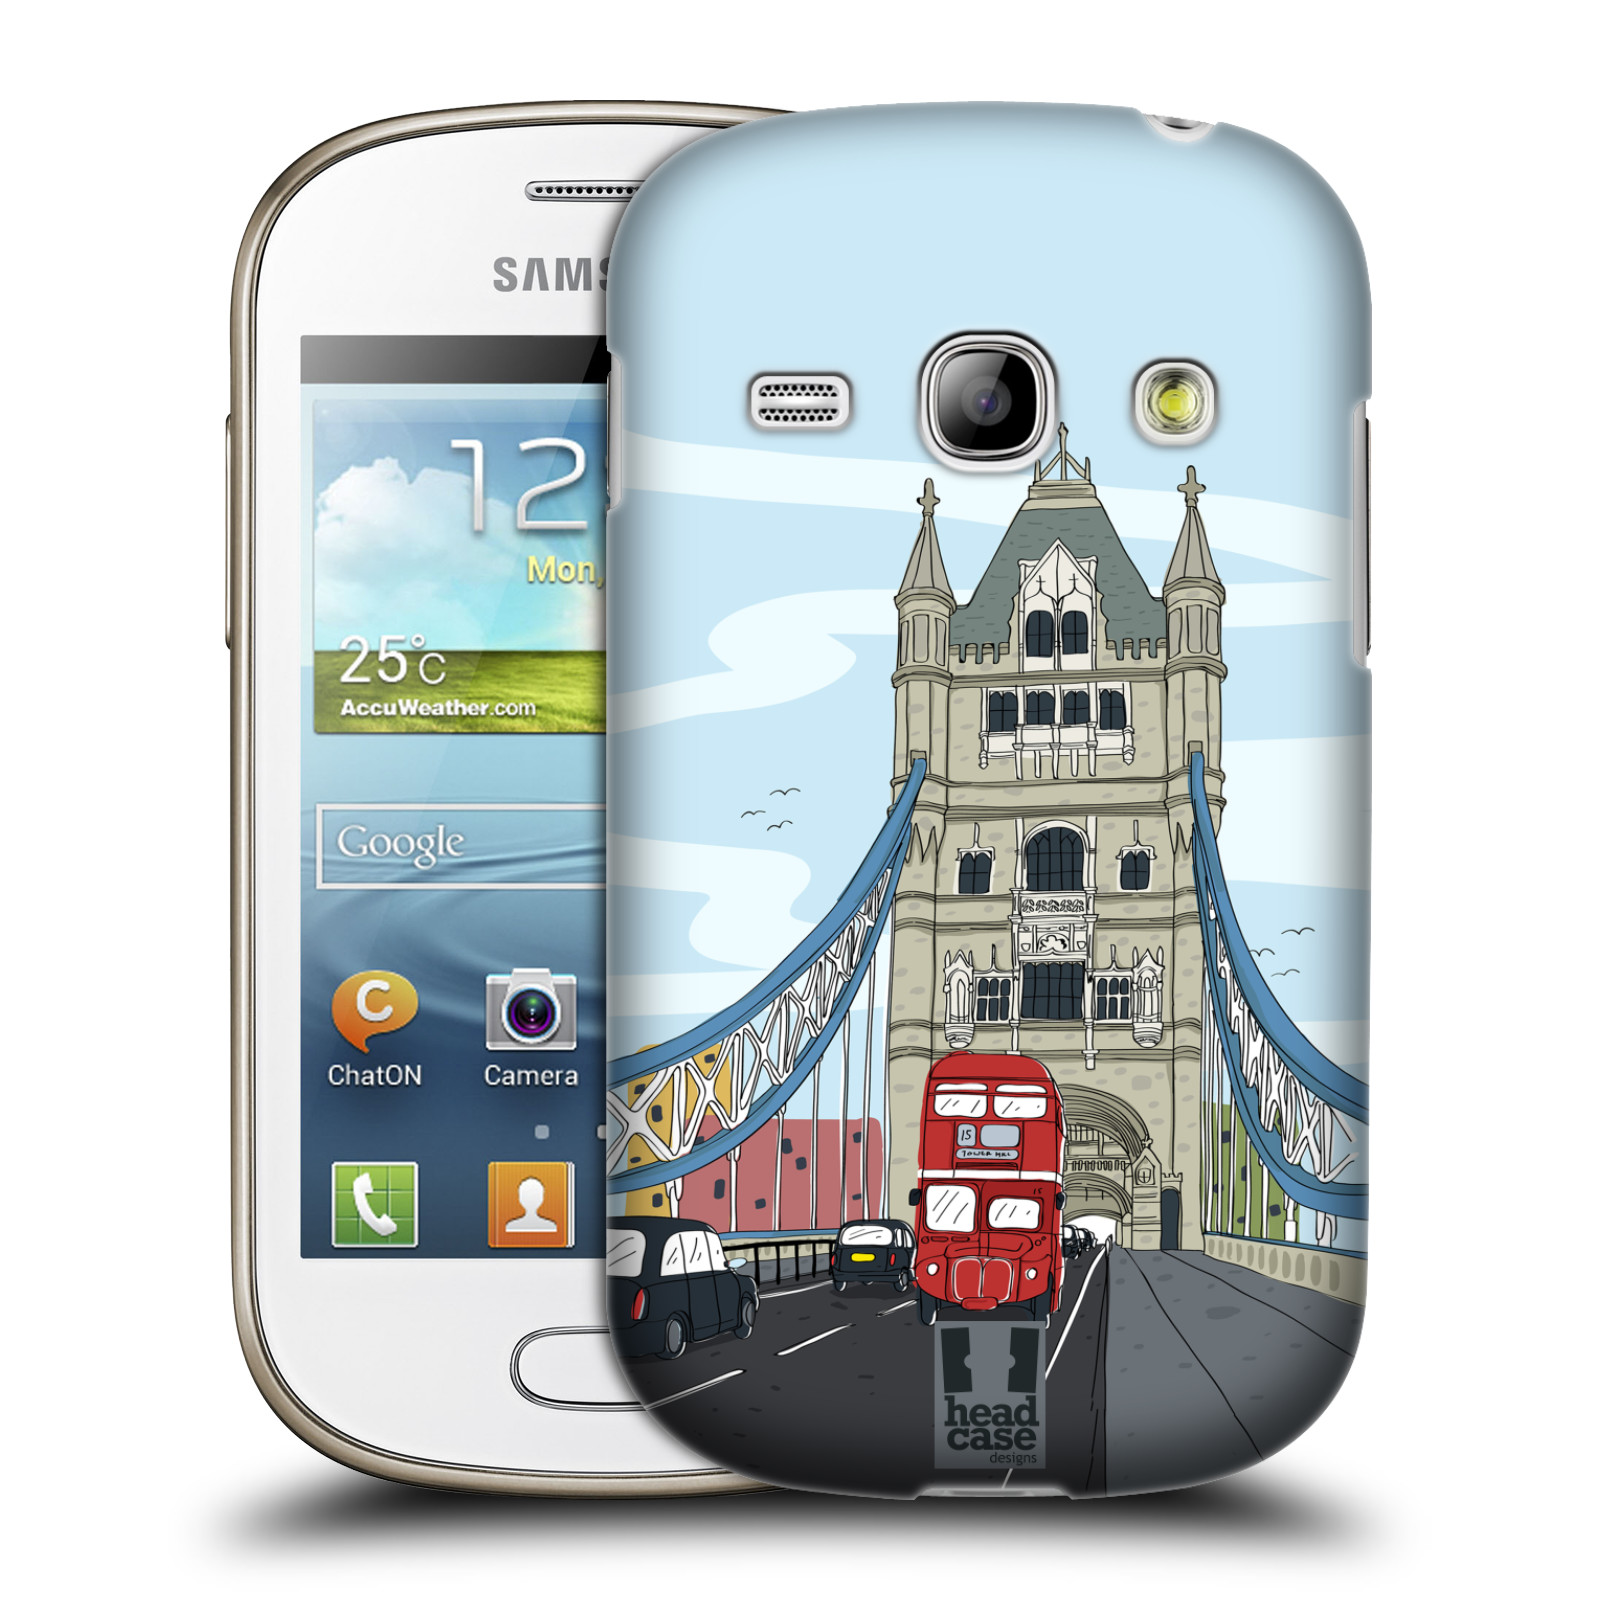 HEAD CASE DESIGNS DOODLE CITIES SERIES 2 CASE FOR SAMSUNG GALAXY FAME S6810